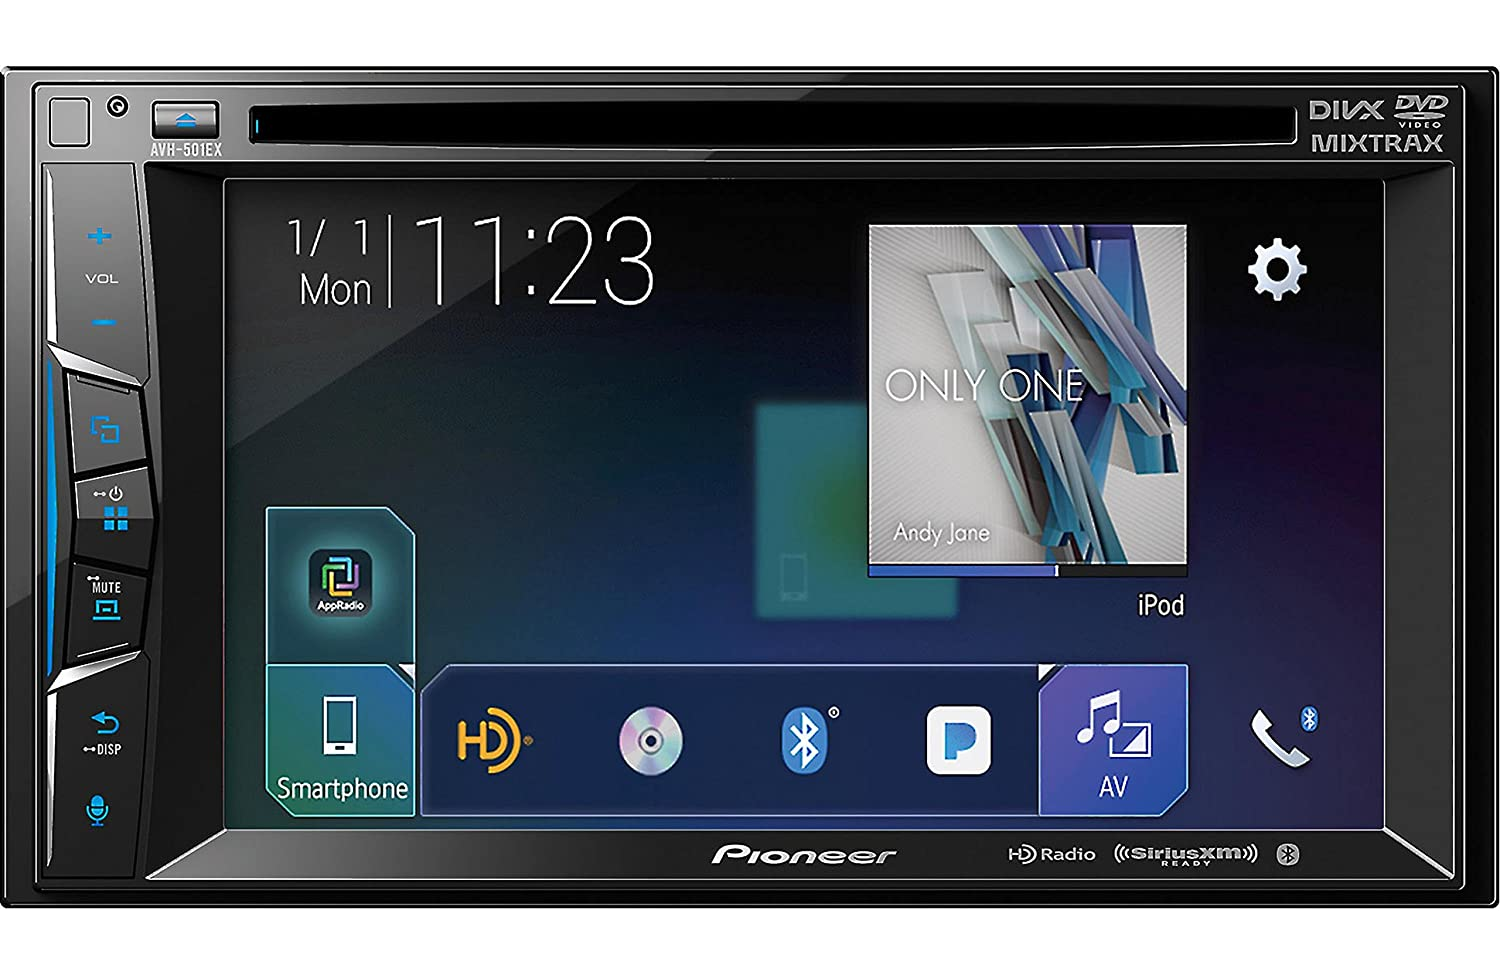 Amazon.com: Pioneer AVH-501EX 6.2 Inch DVD Receiver with HD Radio and Bluetooth: Car Electronics